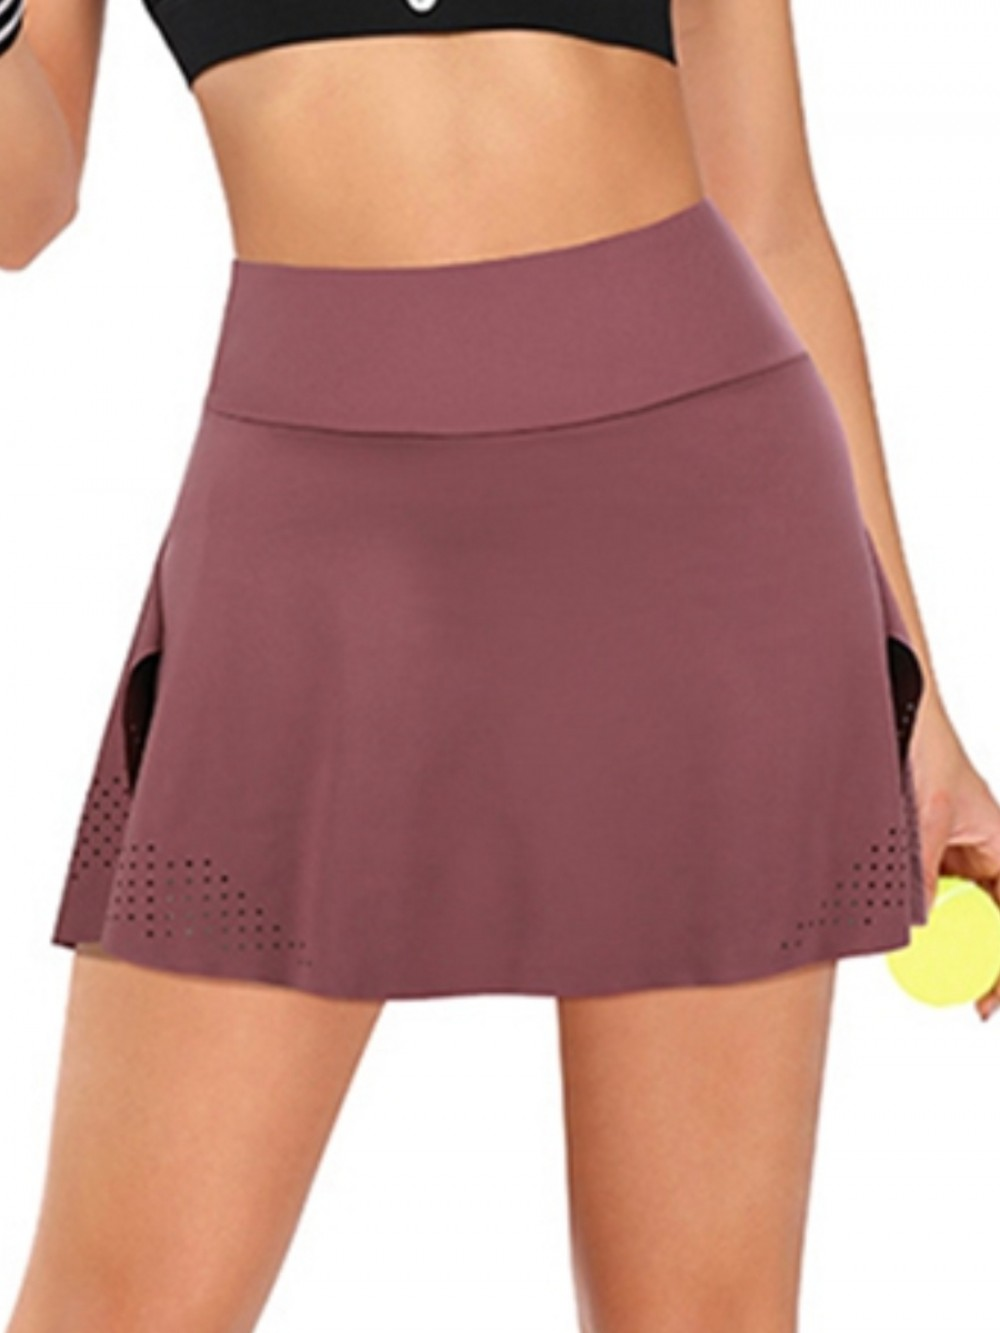 Red High Waist Pleated Tennis Skirt With Pockets For Fitness